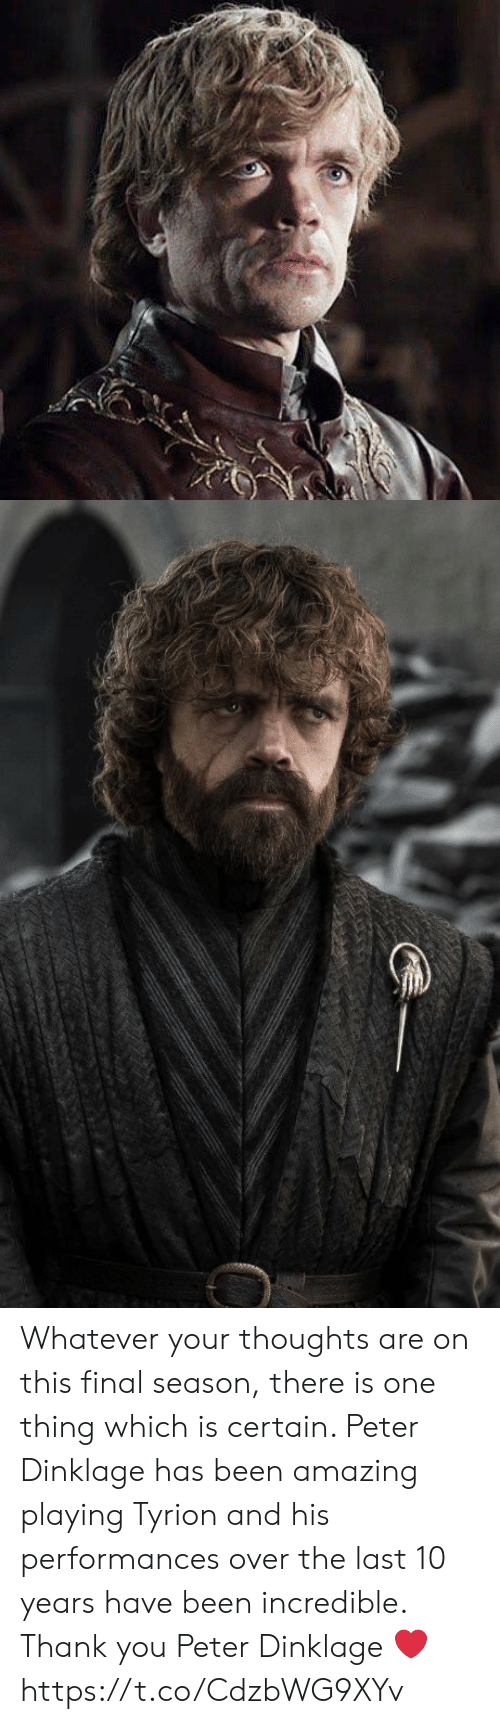 Thank You, Peter Dinklage, and Amazing: Whatever your thoughts are on this final season, there is one thing which is certain. Peter Dinklage has been amazing playing Tyrion and his performances over the last 10 years have been incredible. Thank you Peter Dinklage ❤️ https://t.co/CdzbWG9XYv